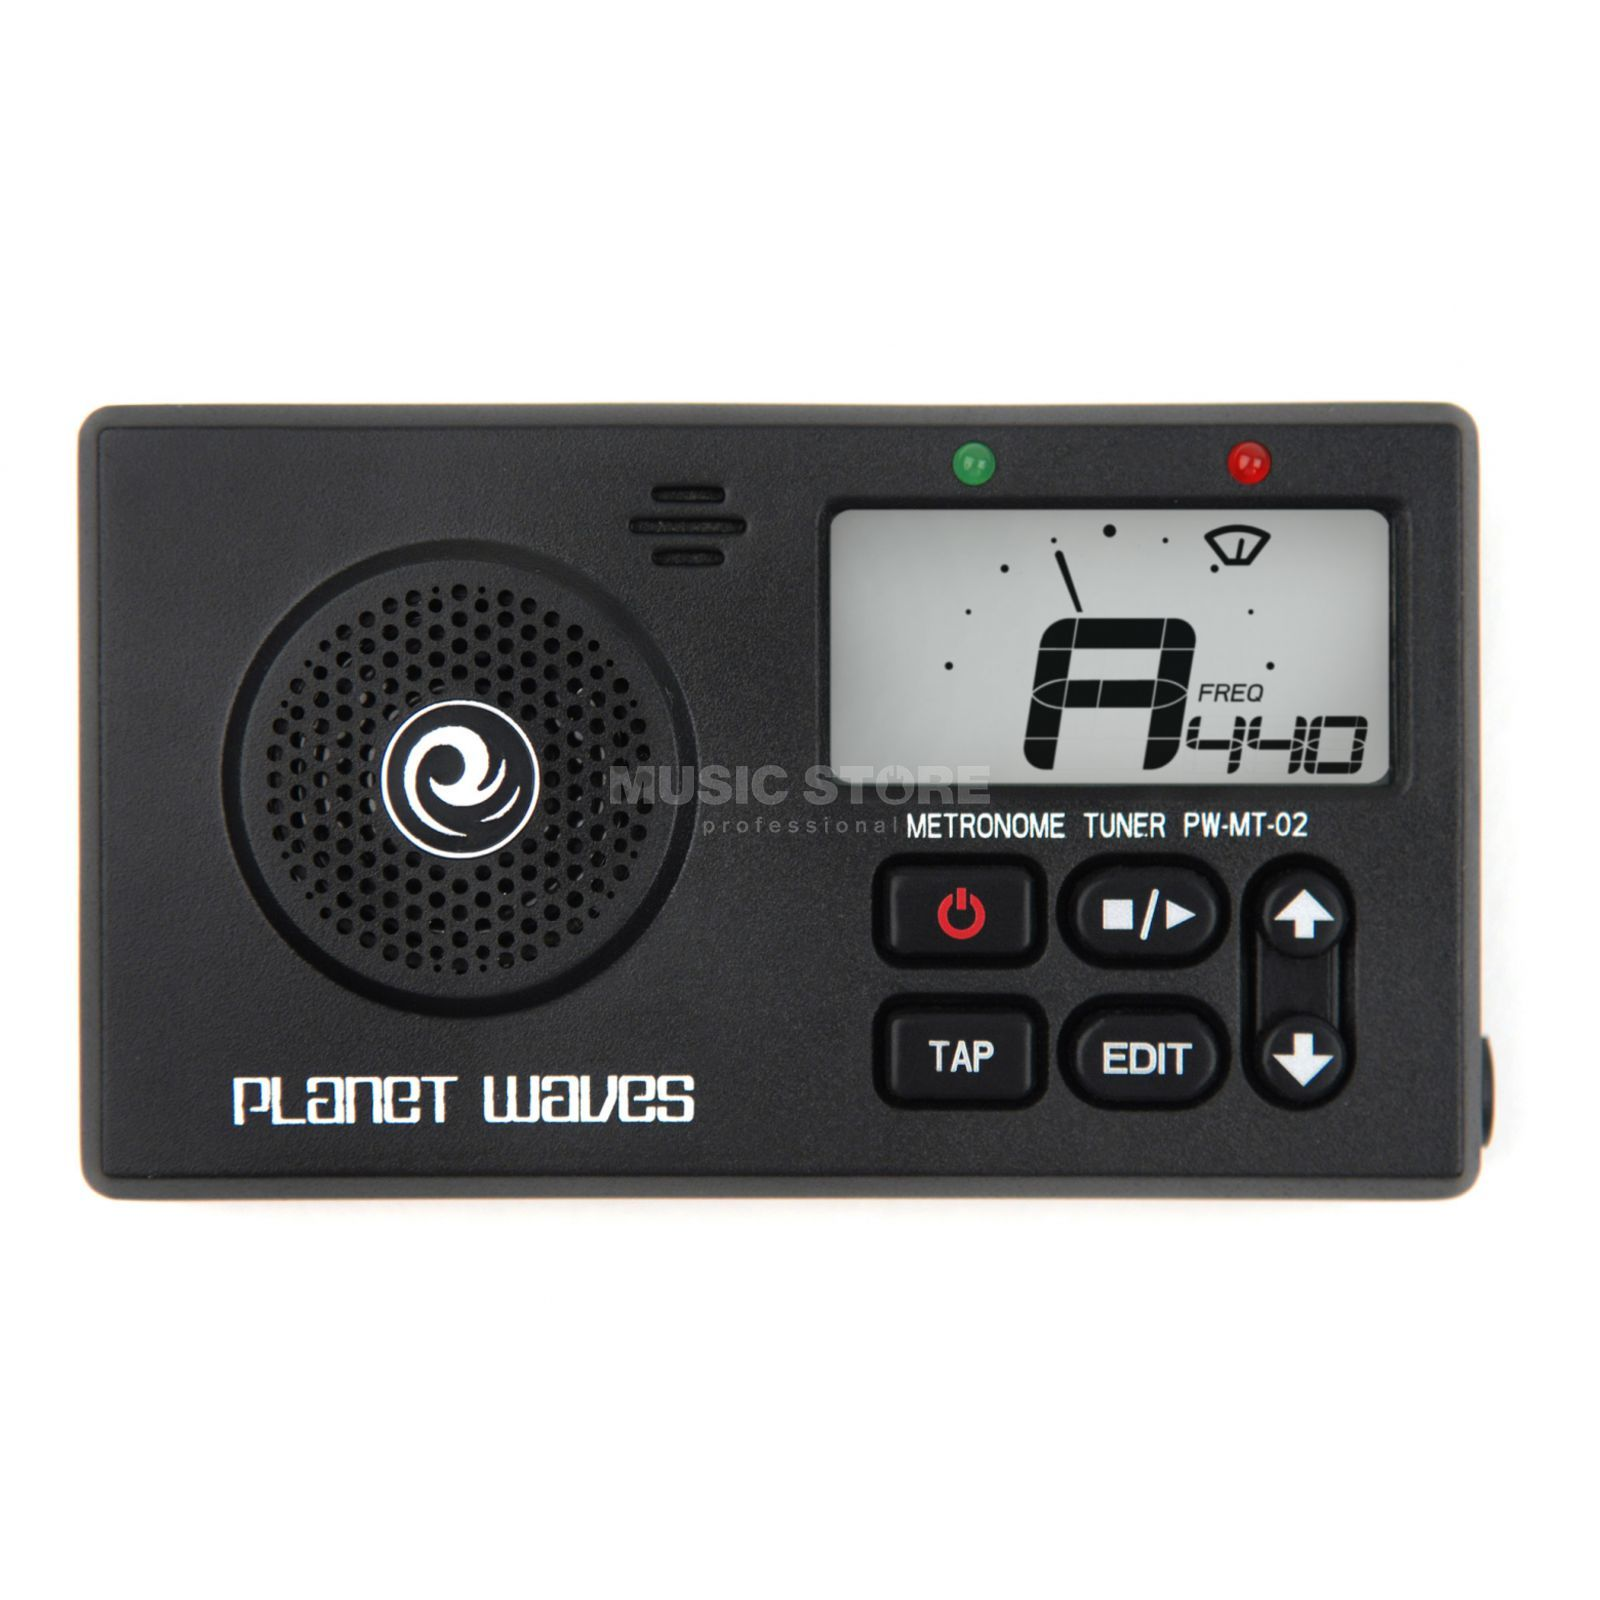 Planet Waves PW-MT-02 Tuner/Metronom Produktbild